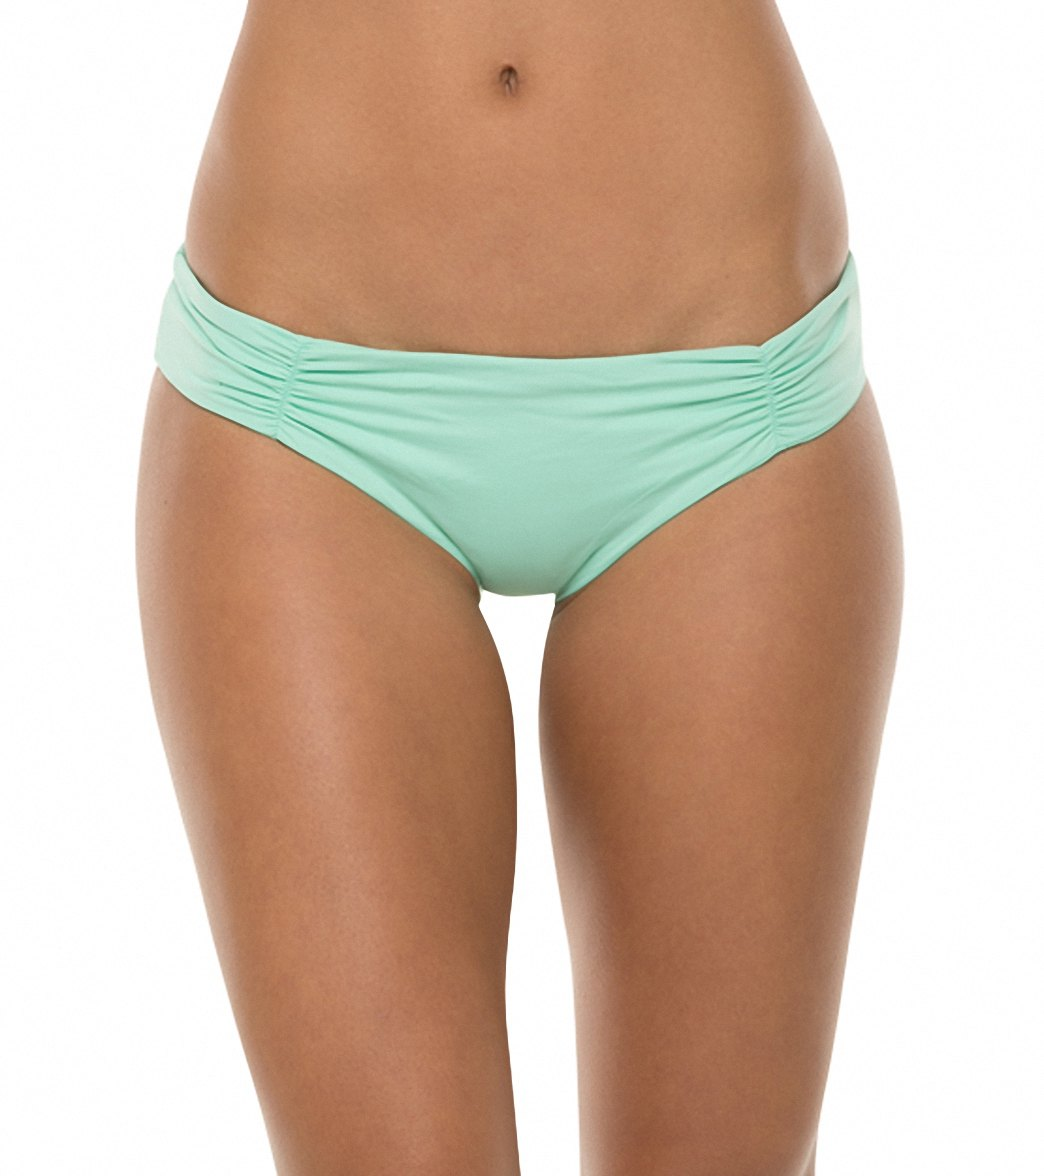 922926f6bf L-Space Sweet & Chic Monique Brazilian Bikini Bottom at SwimOutlet.com -  Free Shipping